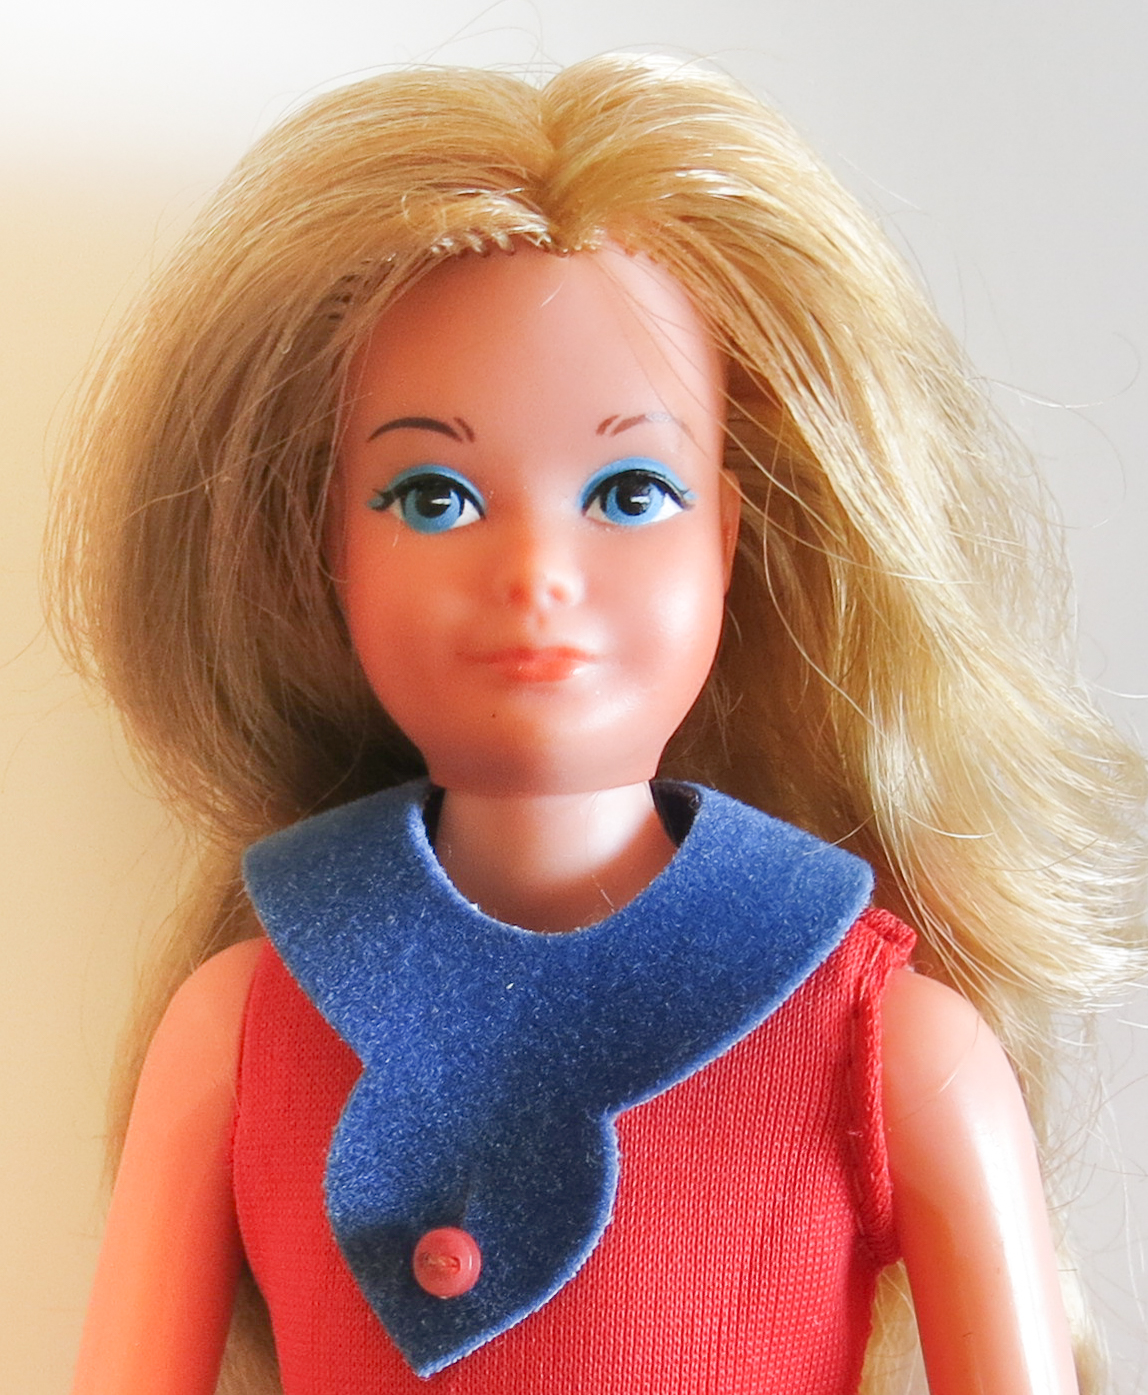 Flipboard How Much Longer Will Foreigners Buy The Growing: My Vintage Barbies Blog: Barbie Of The Month: Growing Up